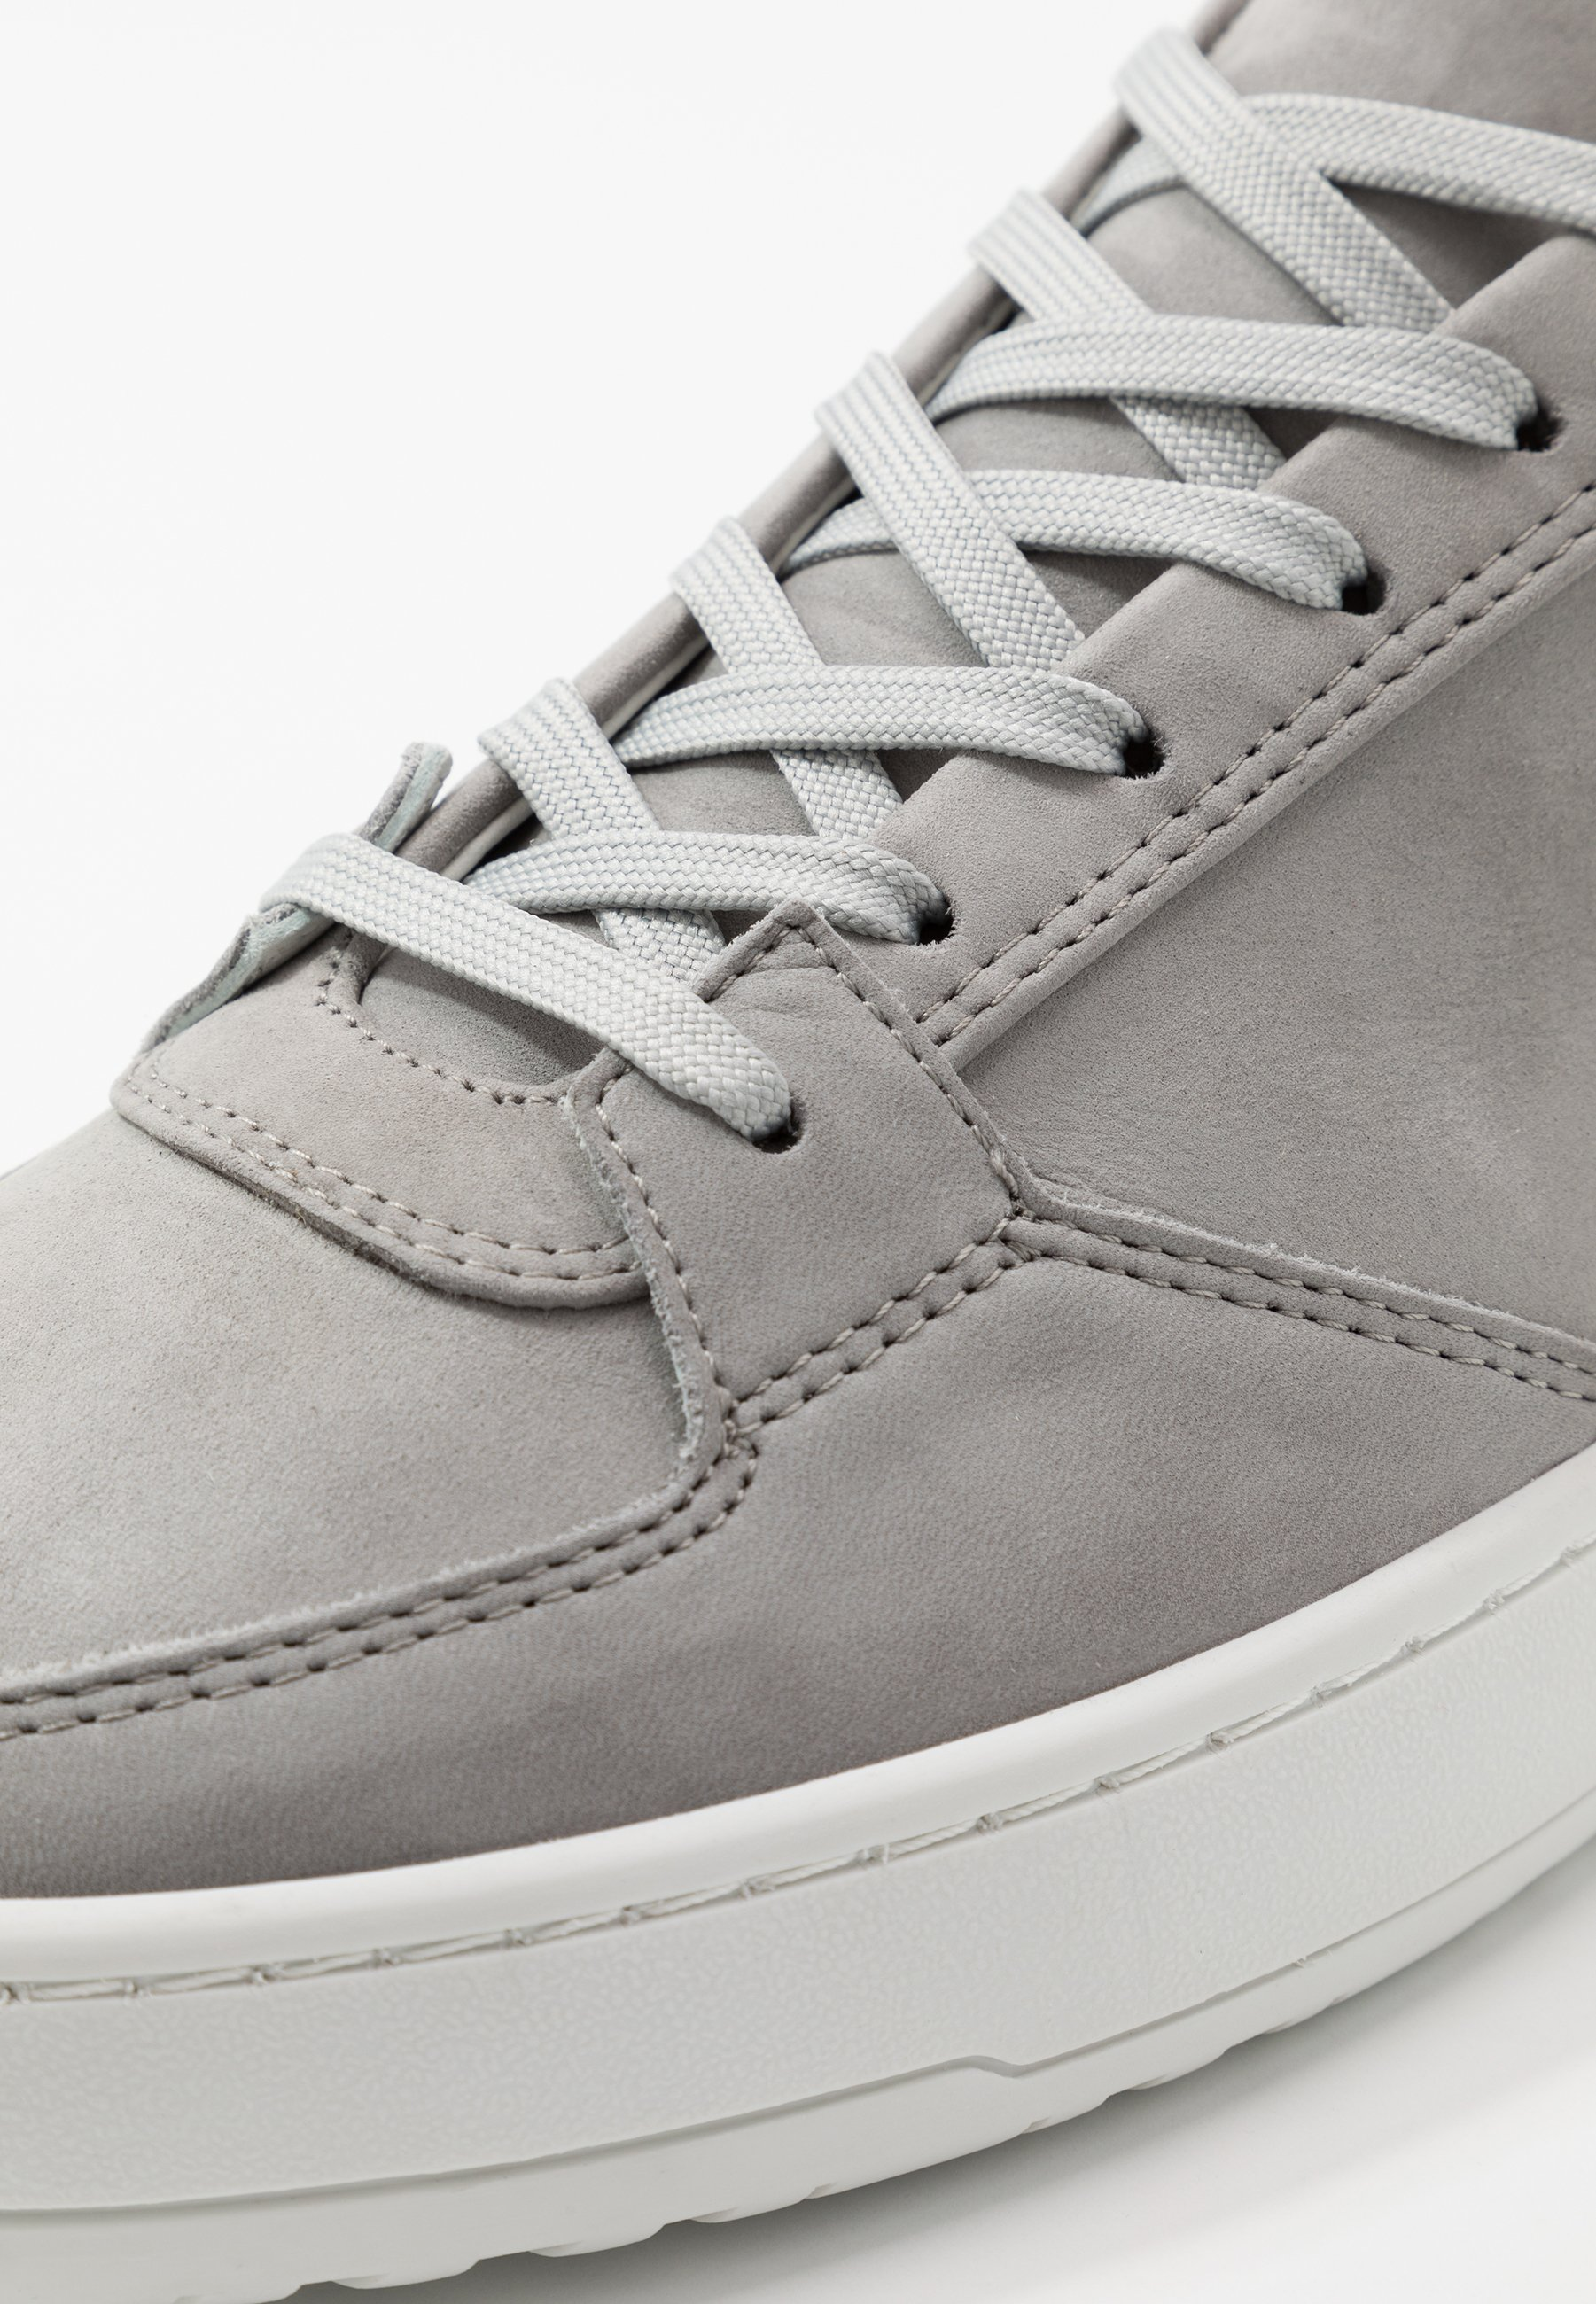 Sneakers alloy